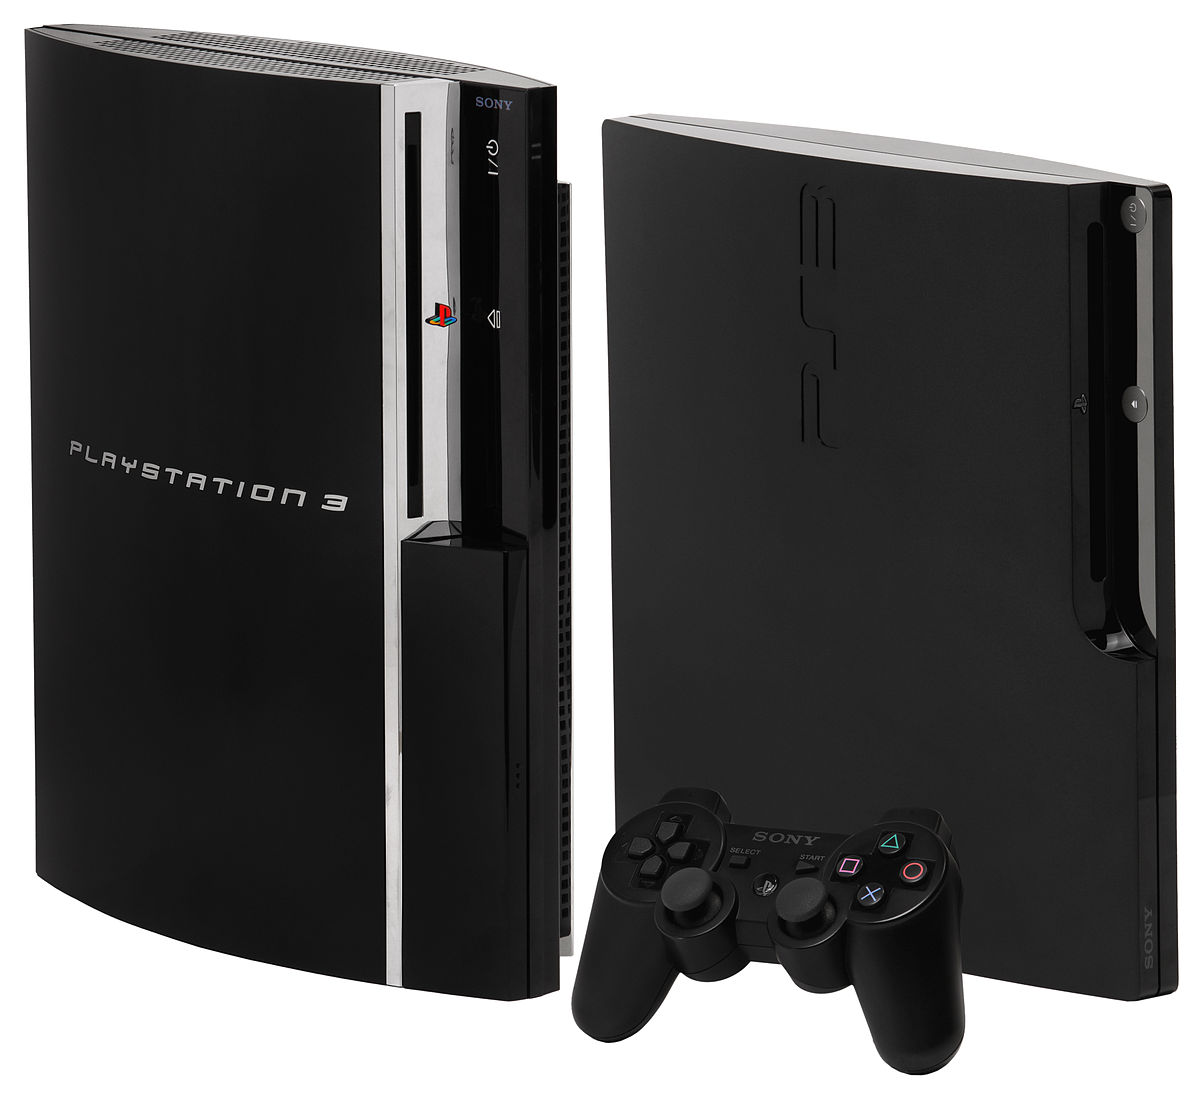 Free Ps3 Console: Simple English Wikipedia, The Free